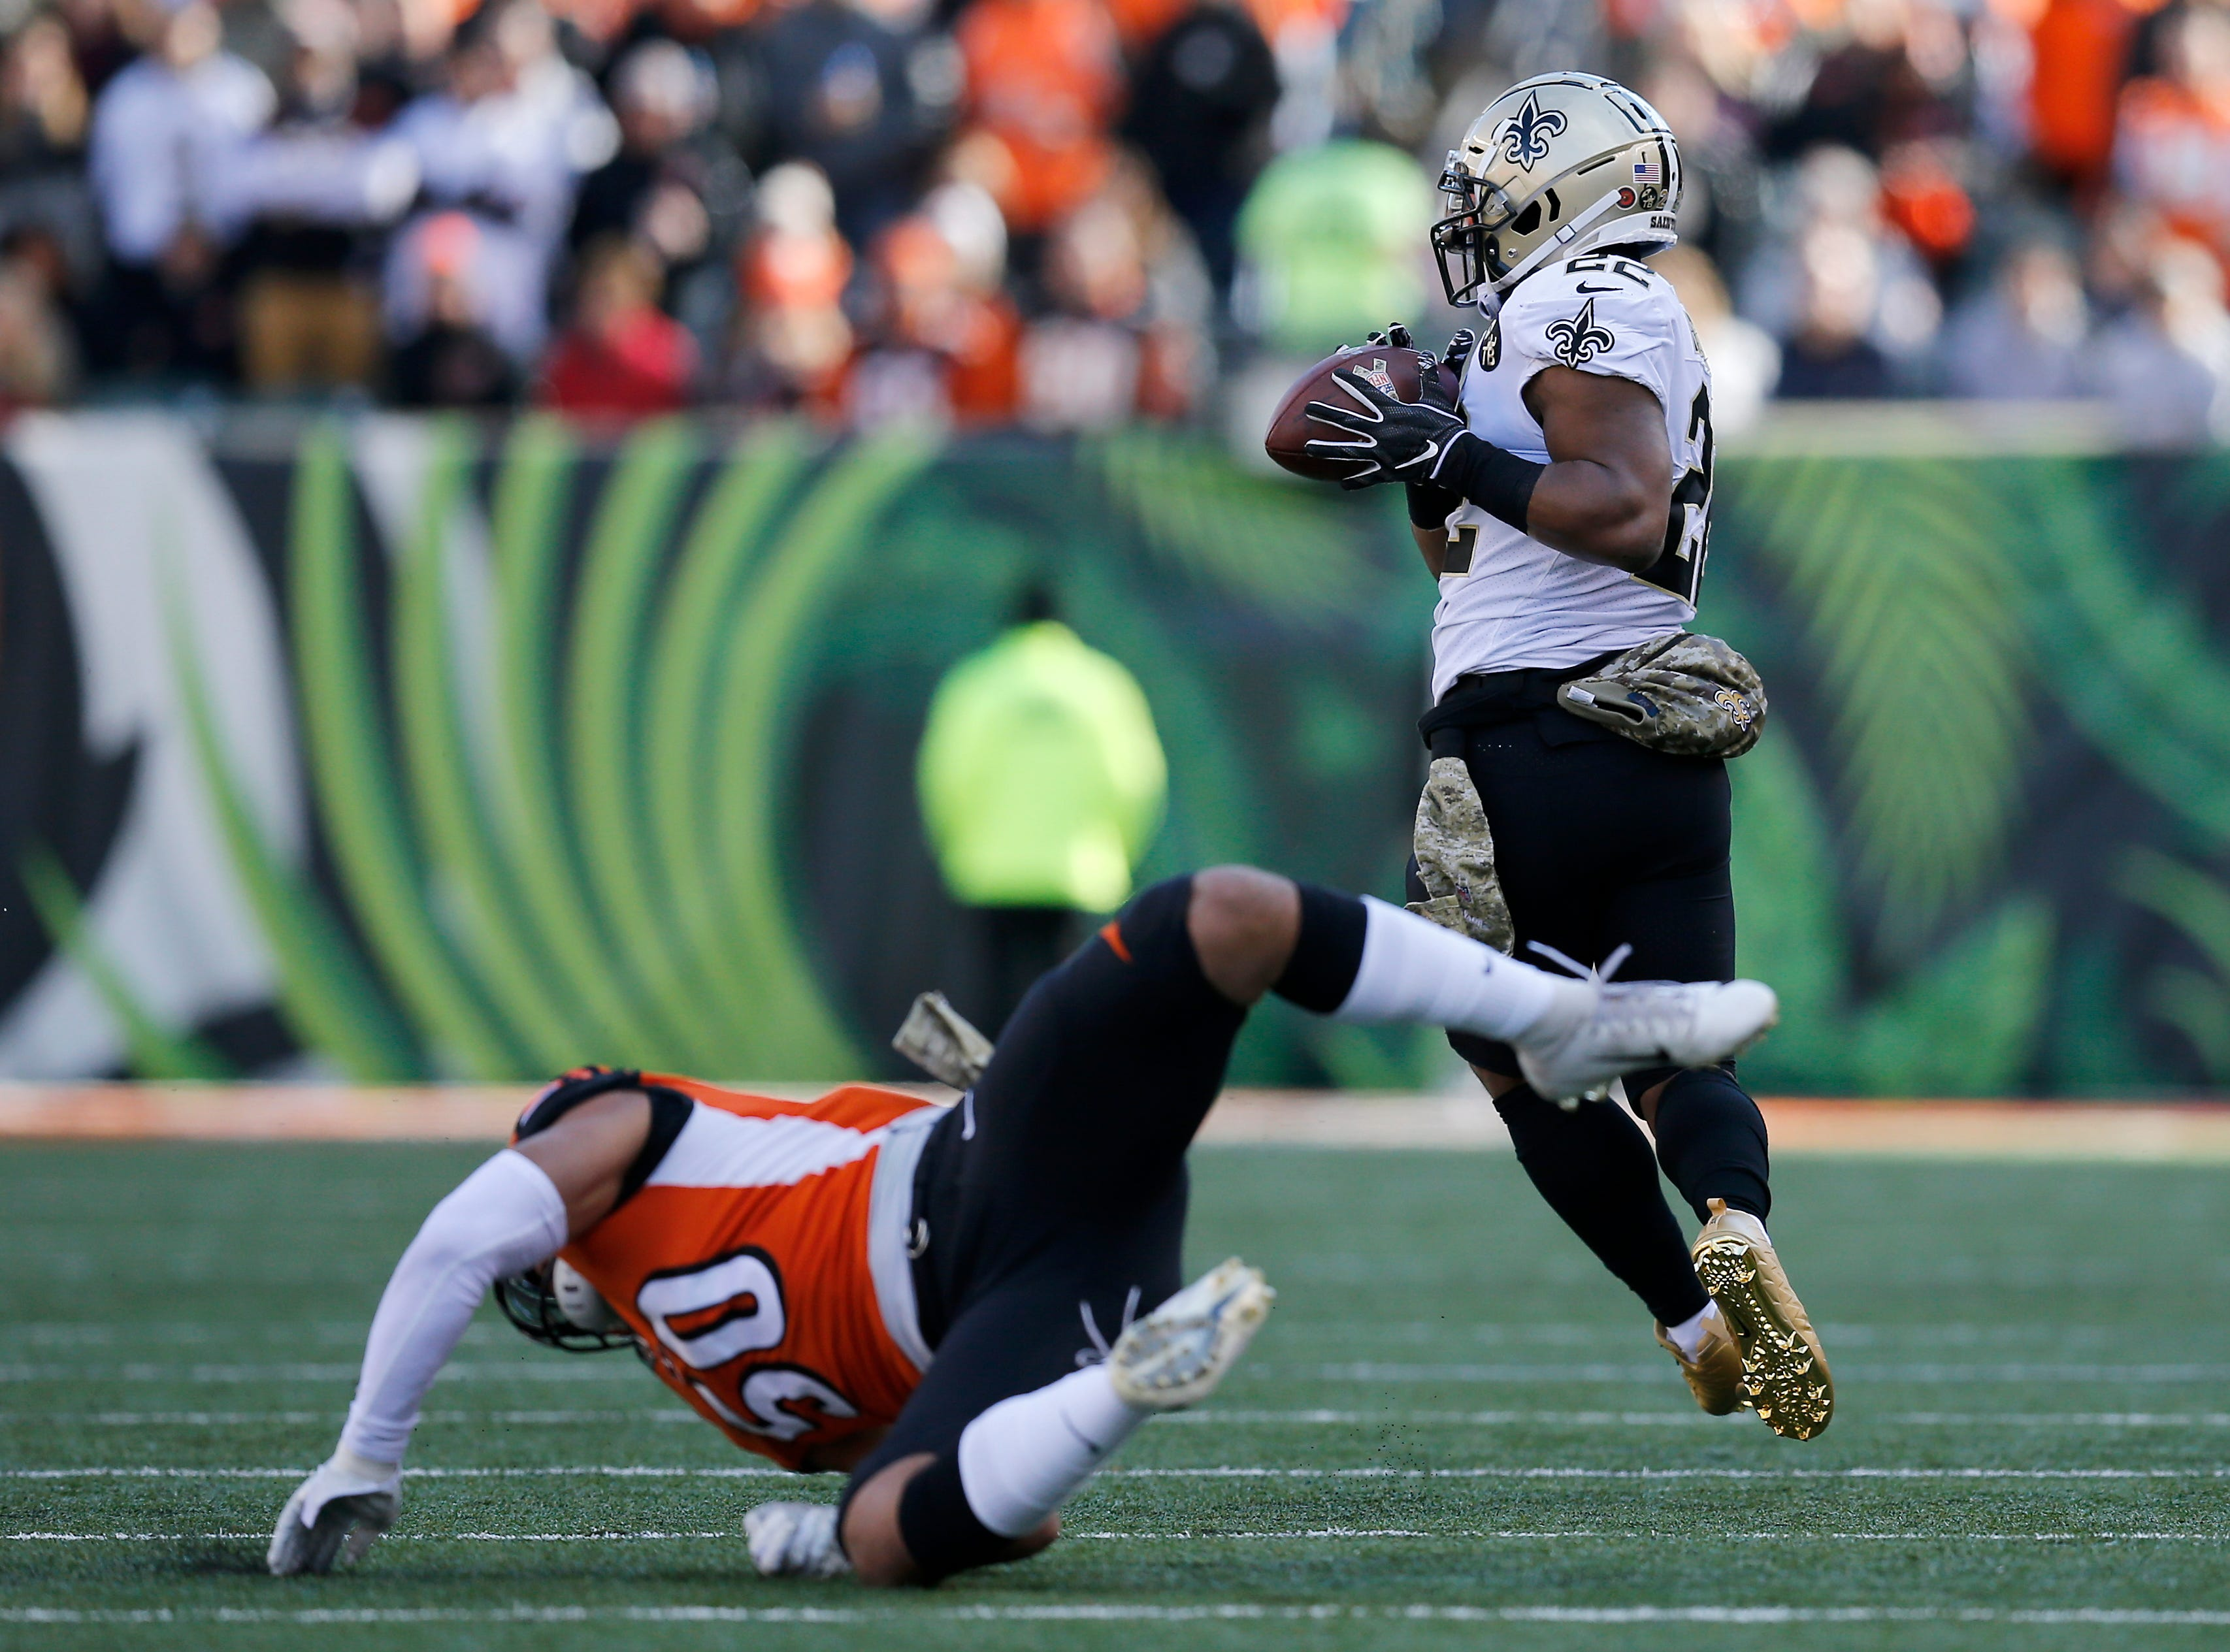 New Orleans Saints running back Mark Ingram (22) makes a catch over Cincinnati Bengals outside linebacker Jordan Evans (50) in the first quarter of the NFL Week 10 game between the Cincinnati Bengals and the New Orleans Saints at Paul Brown Stadium in downtown Cincinnati on Sunday, Nov. 11, 2018. The Saints led 35-7 at halftime.